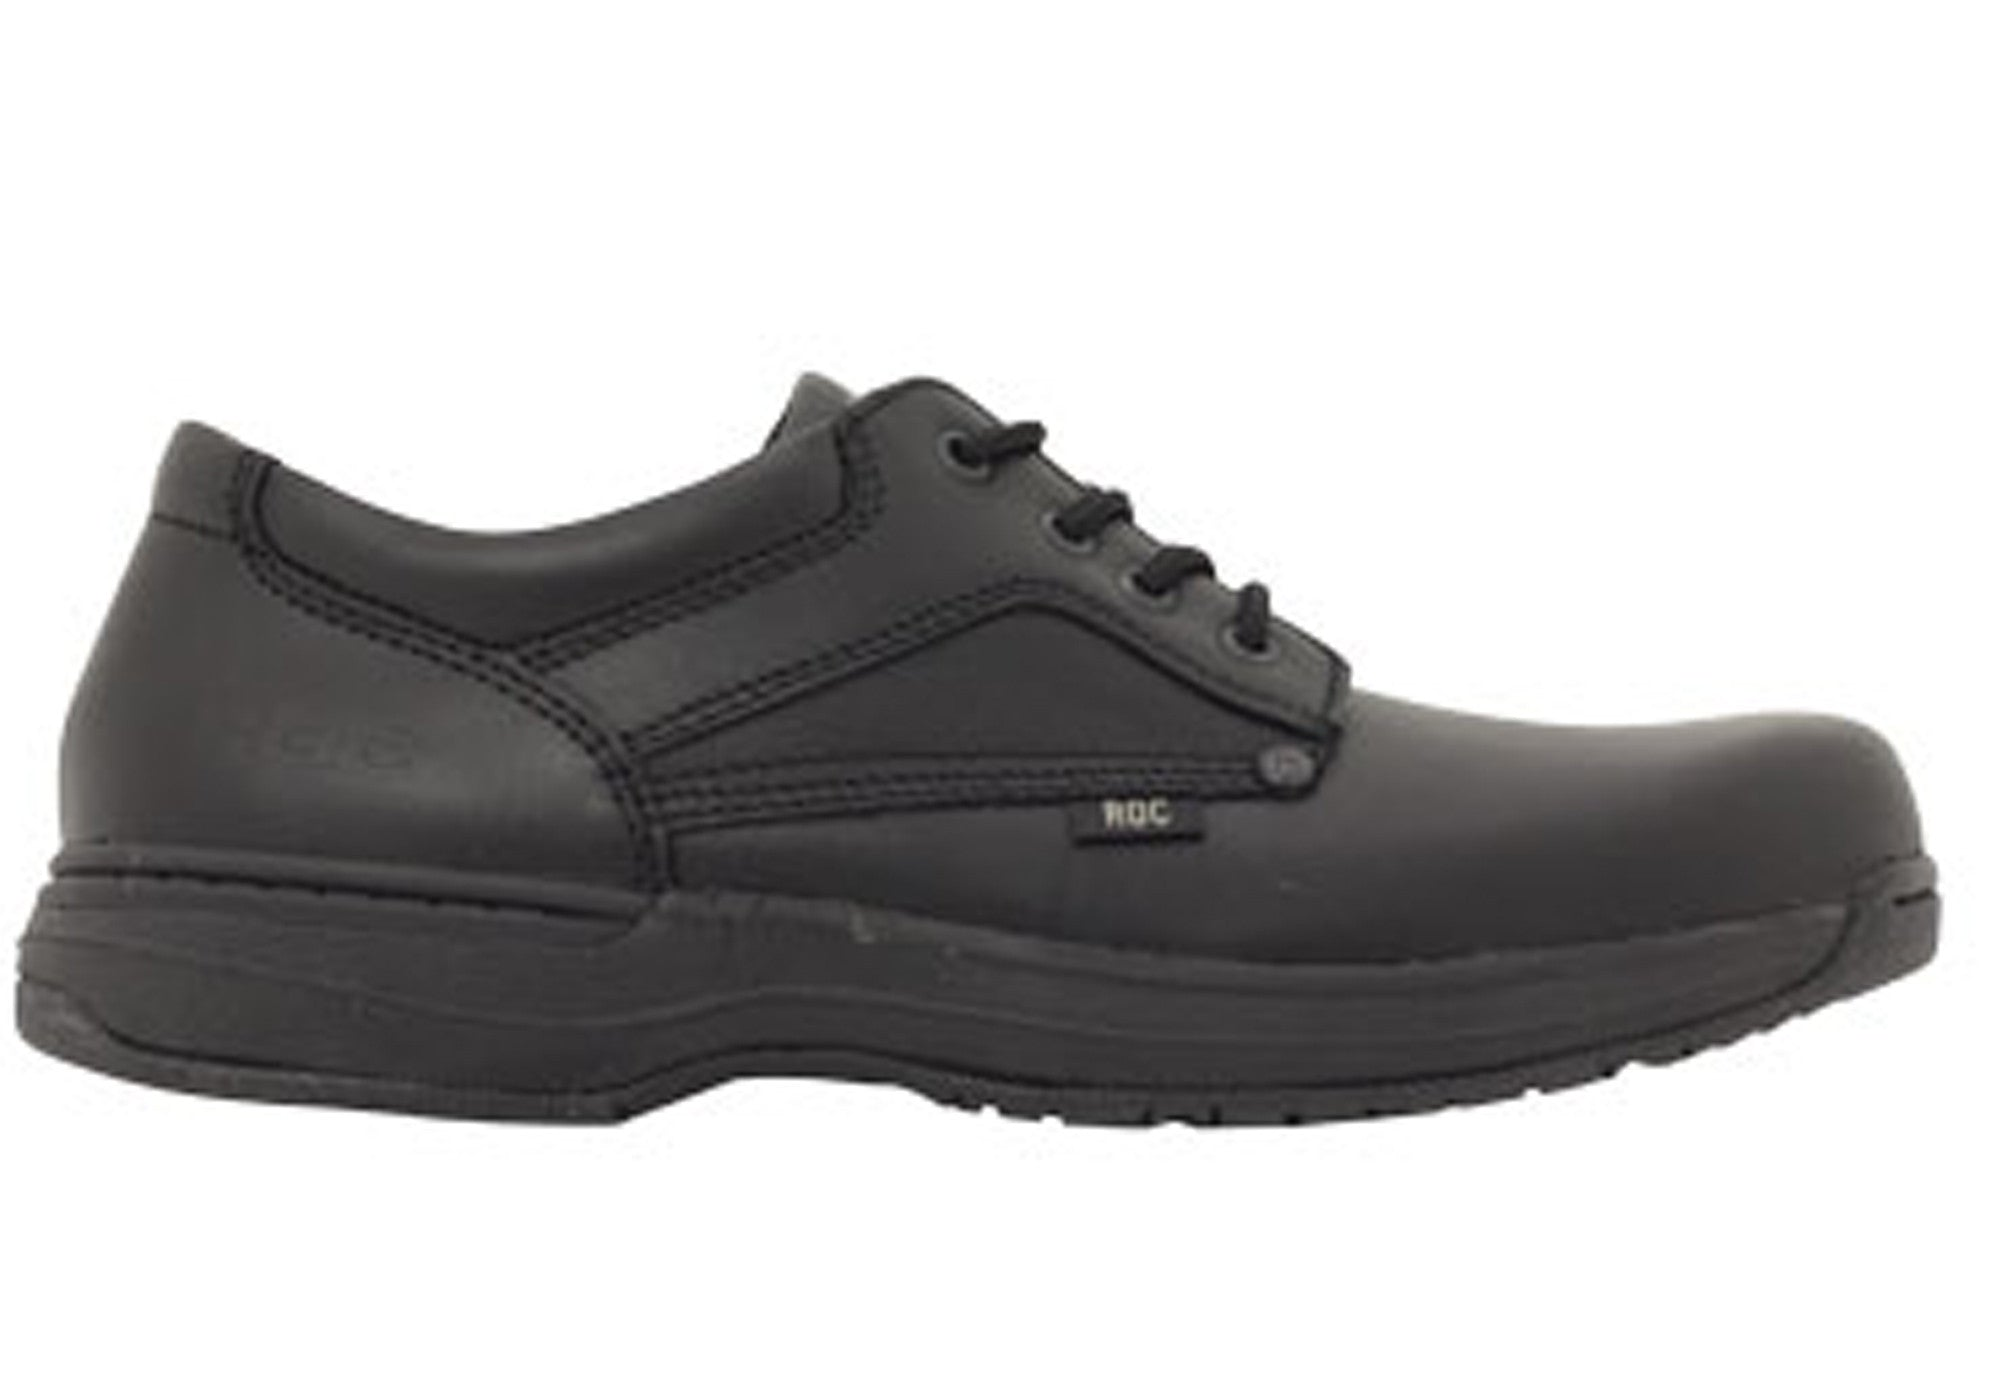 ROC Aero Older Boys/Mens School Shoes